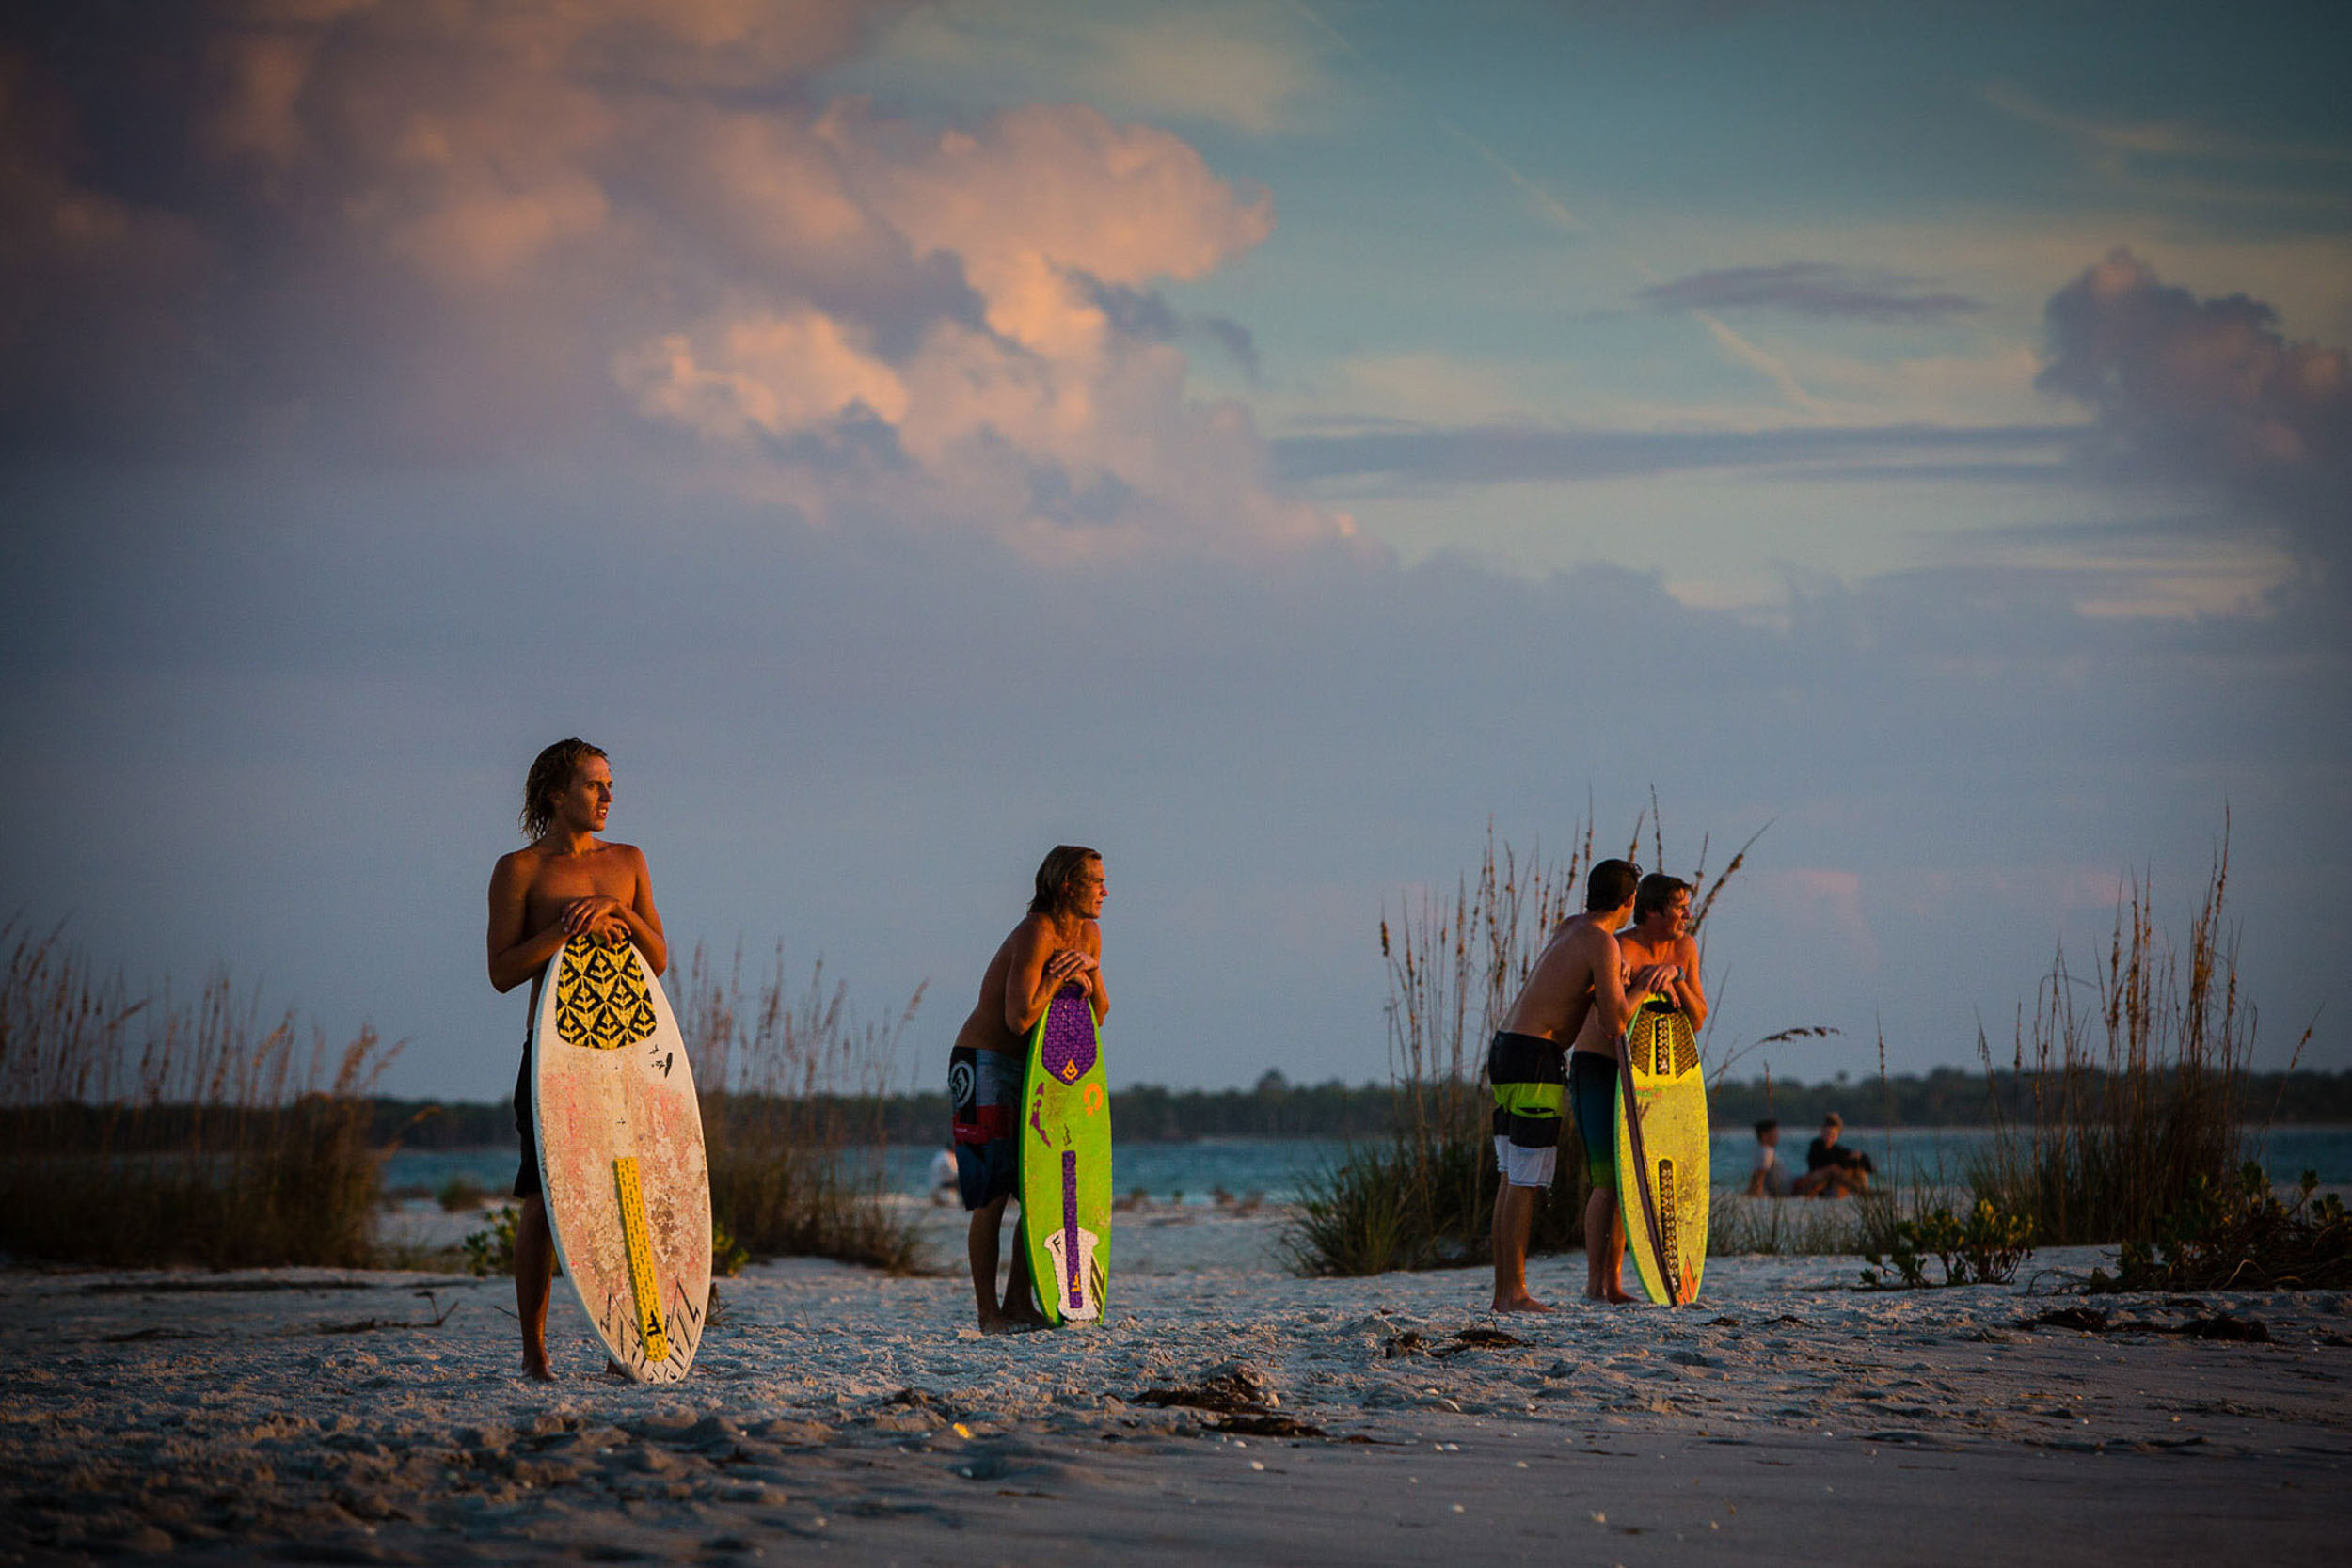 Florida Photography | Boca Grande - National Geographic Traveler | Steven Martine